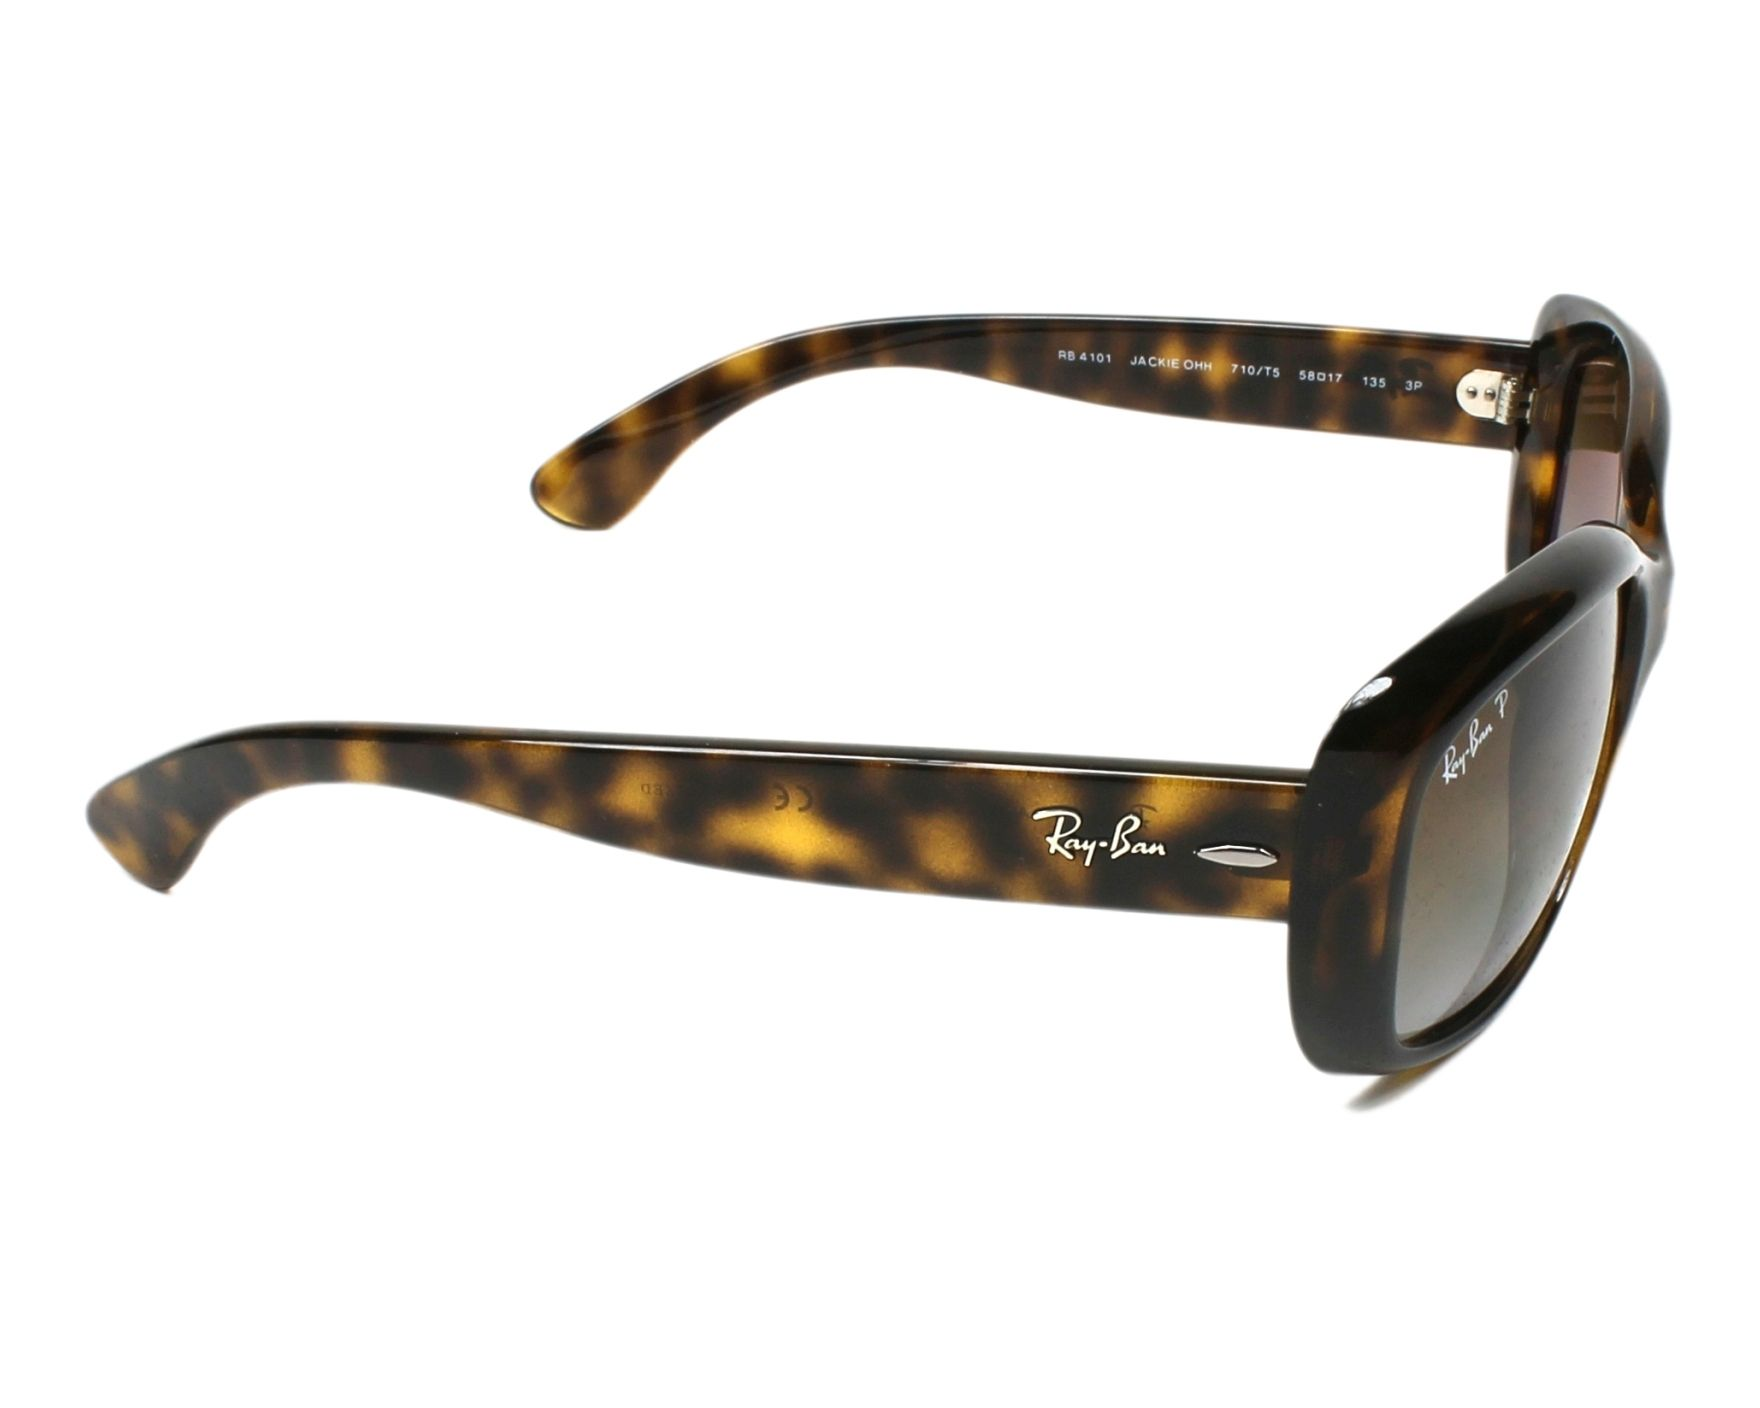 1130748ad1 Sunglasses Ray-Ban RB-4101 710 T5 58-19 Havana side view